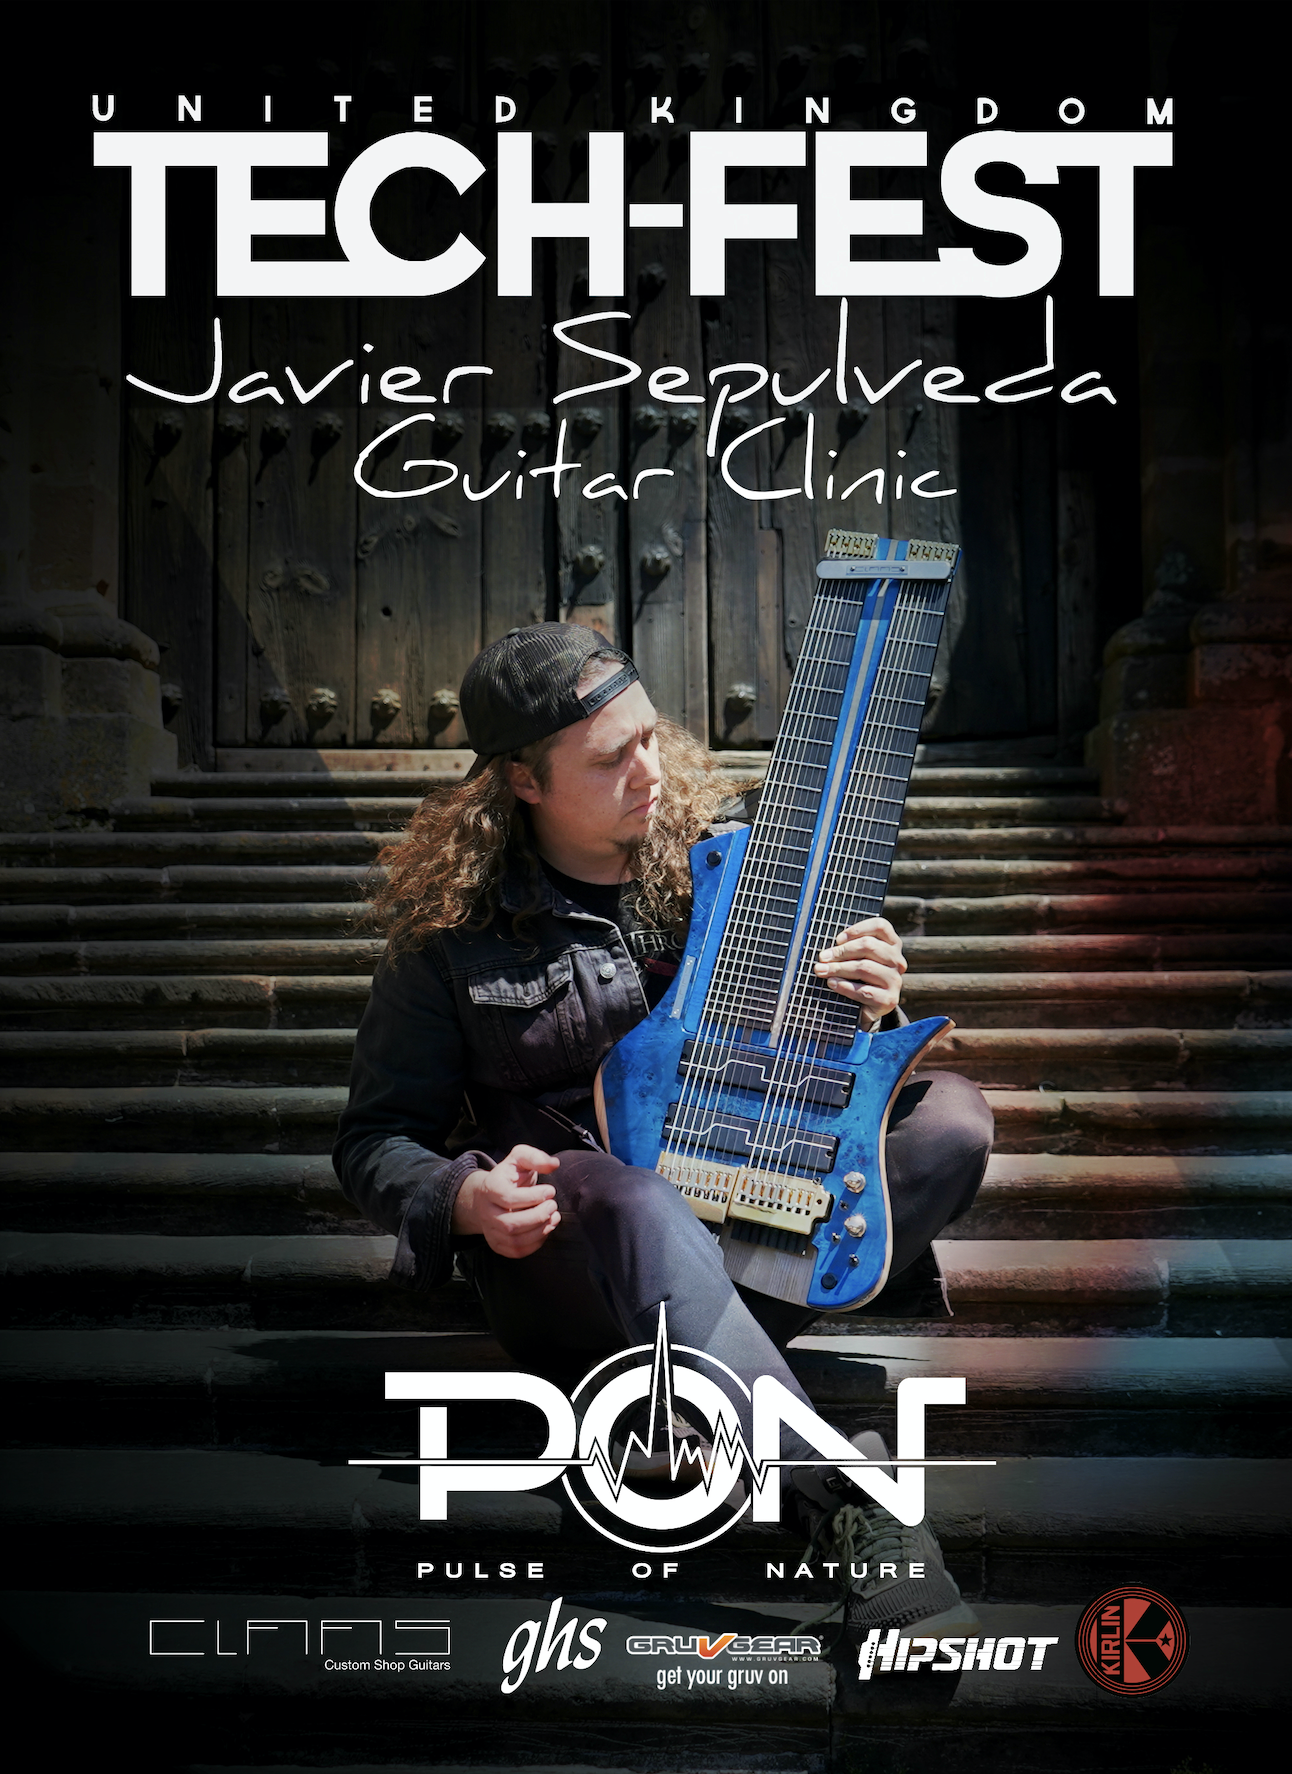 UNITED KINGDOMTECH FEST - JULY 4TH 2:00PMHonored to announce that I'll be doing my very first 16 string guitar workshop in the United Kingdom on July 4th at the TECH FEST in Newark! I'll share with you some of the techniques I have learned with my bro Felix Martin during all this time re discovering guitar, I'll explain some useful tips to create 8 fingers melodic chord tapping ideas, and interesting lines using chord interval structures, plus a few more things. Looking forward to make new friends in the UK 🇬🇧